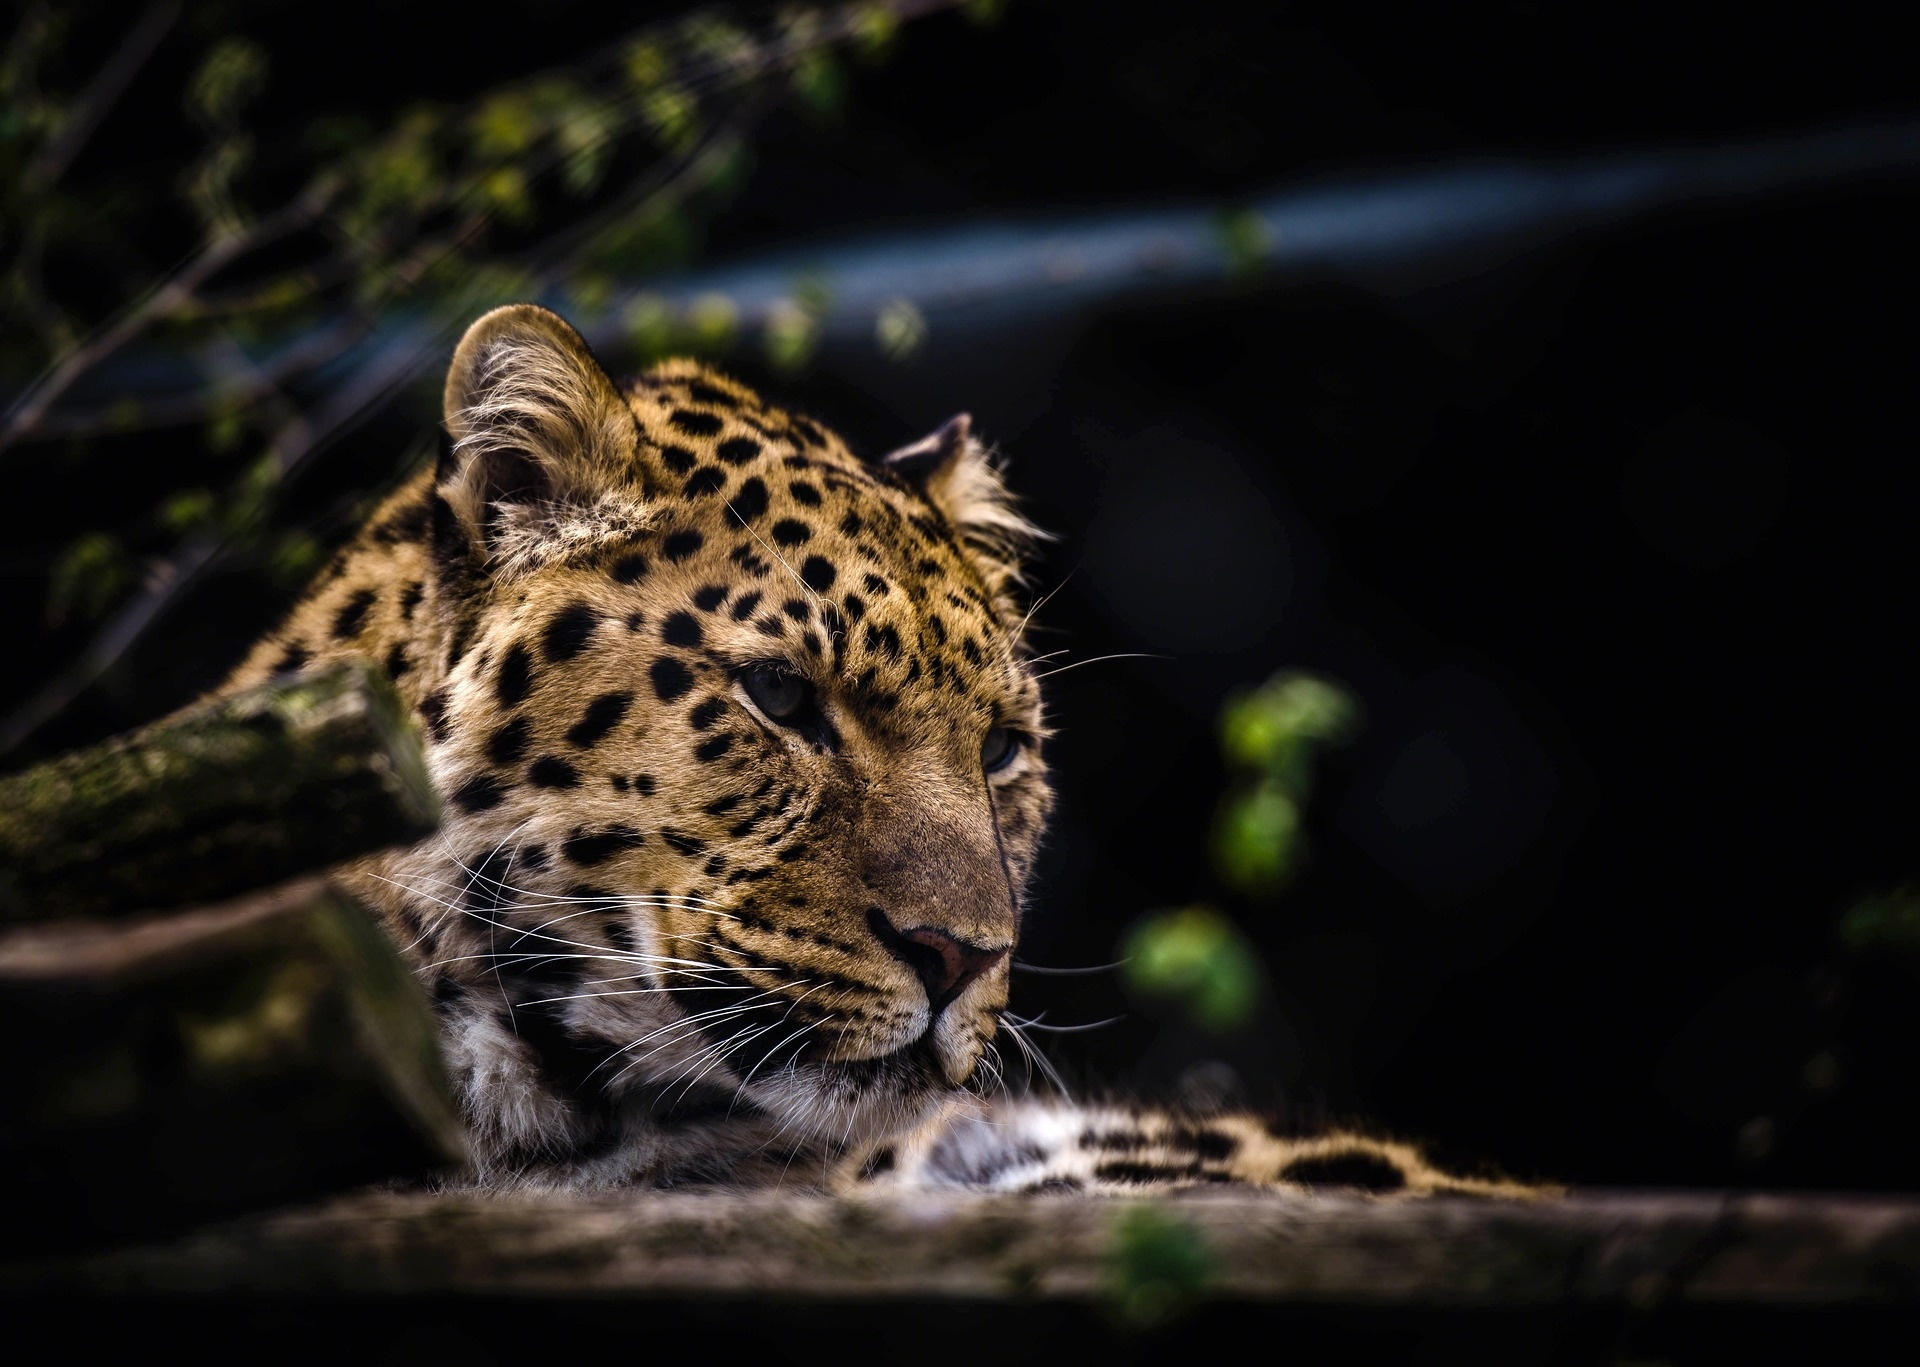 Leopards are endangered and are listed as a 'vulnerable' species